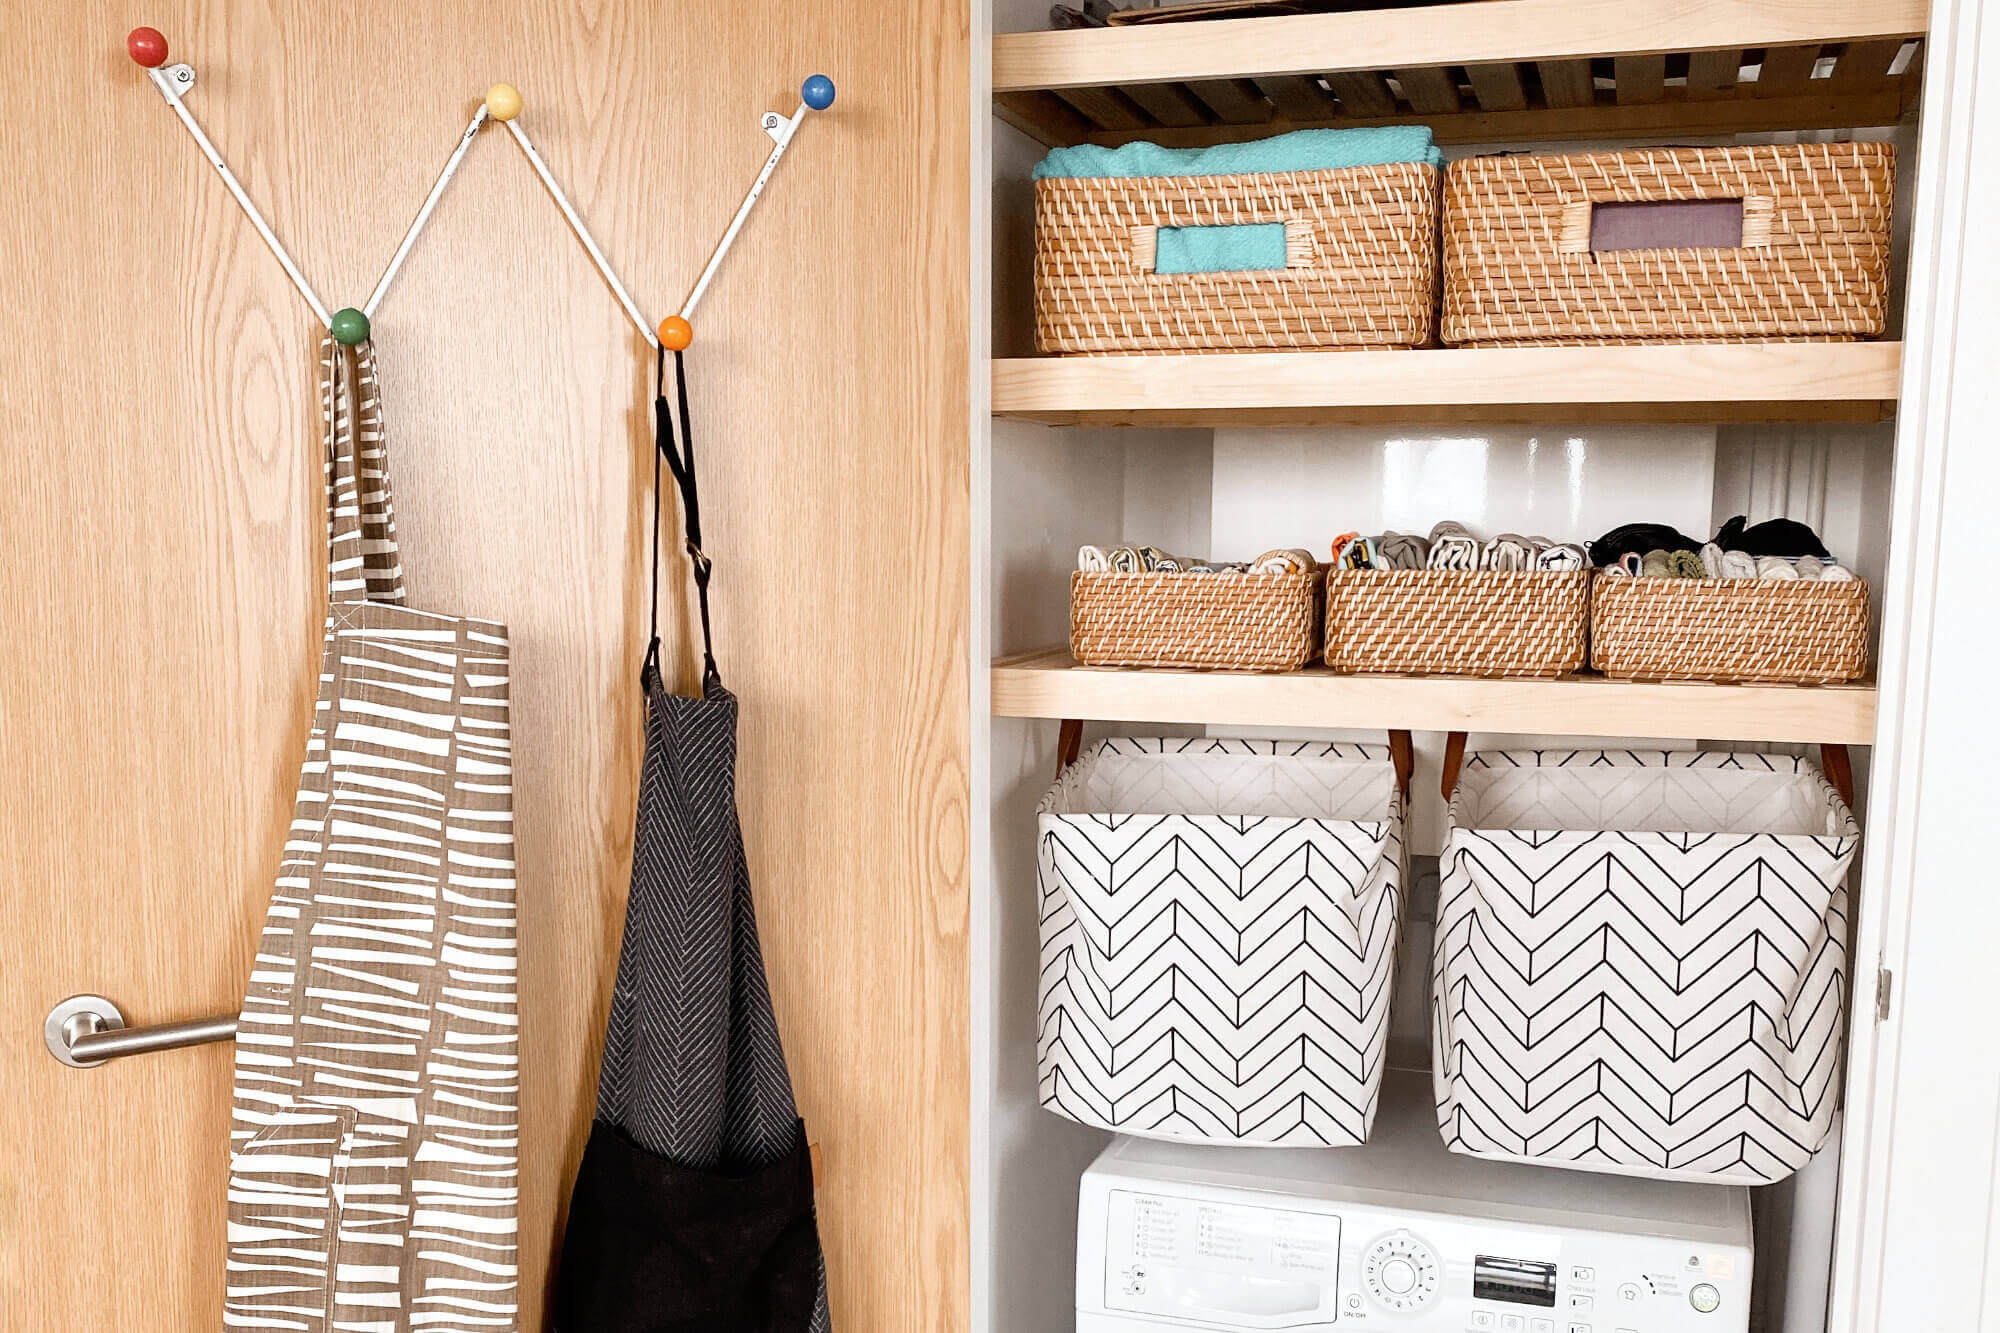 A Closet That Sparks Joy With Tea Towels Neatly Folded Using The KonMari Method Of Tidying